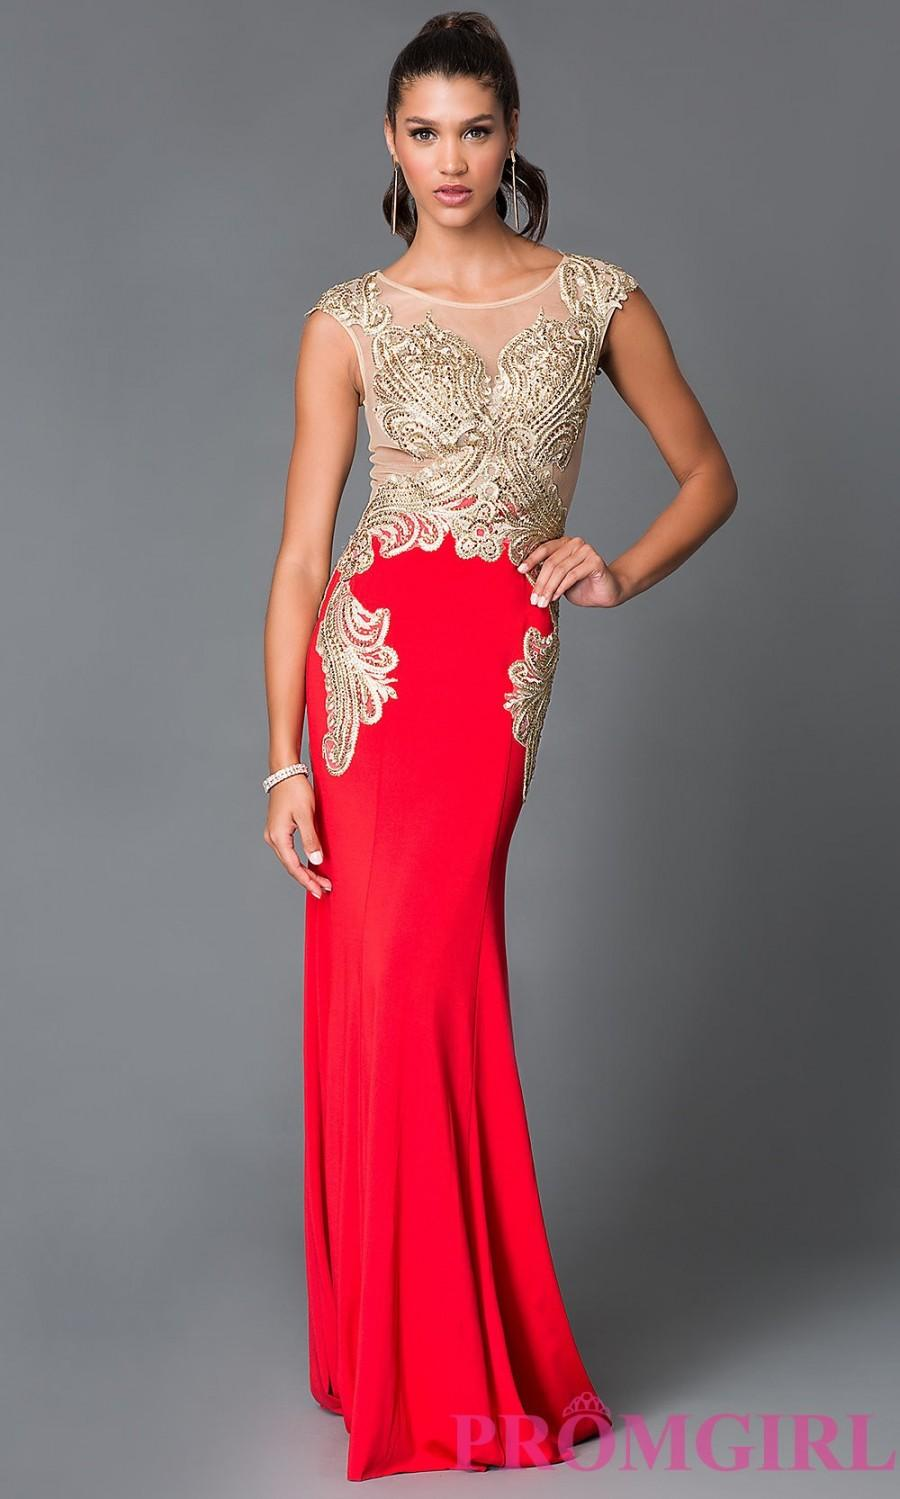 Düğün - Long Scoop Neck Embroidered Bodice Prom Dress - Discount Evening Dresses